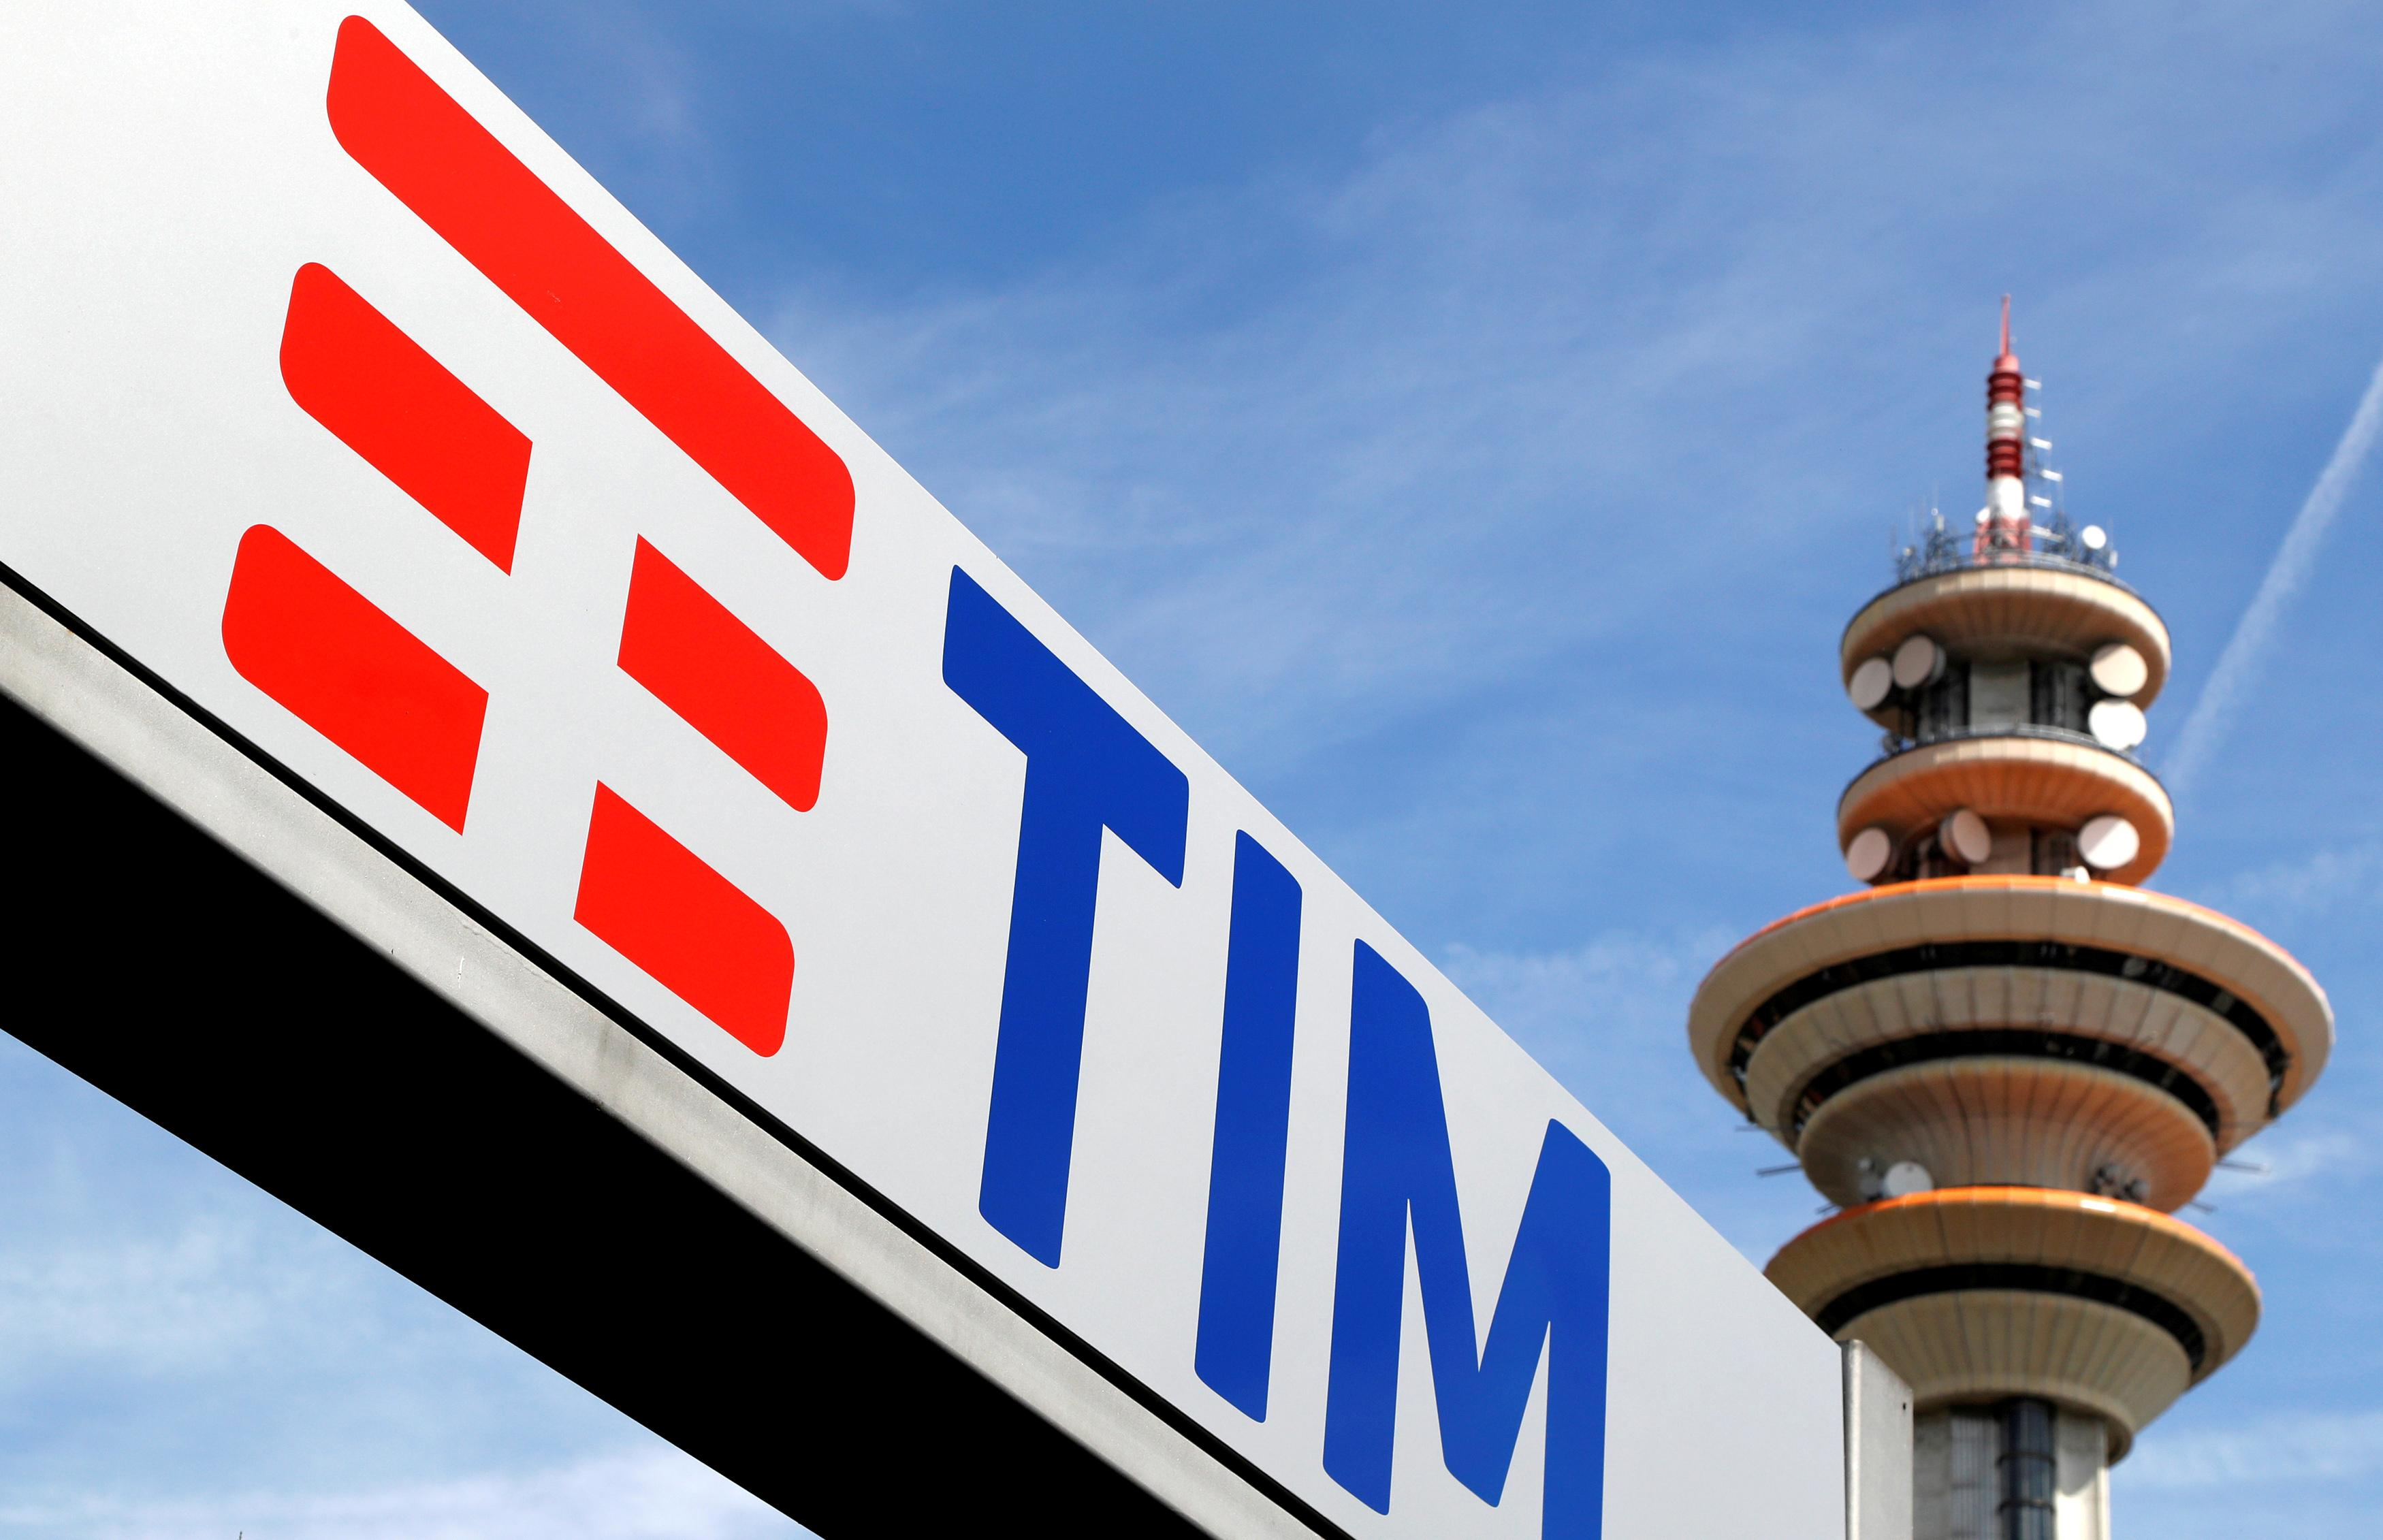 Italy's TIM agrees deal with DAZN to stream sports